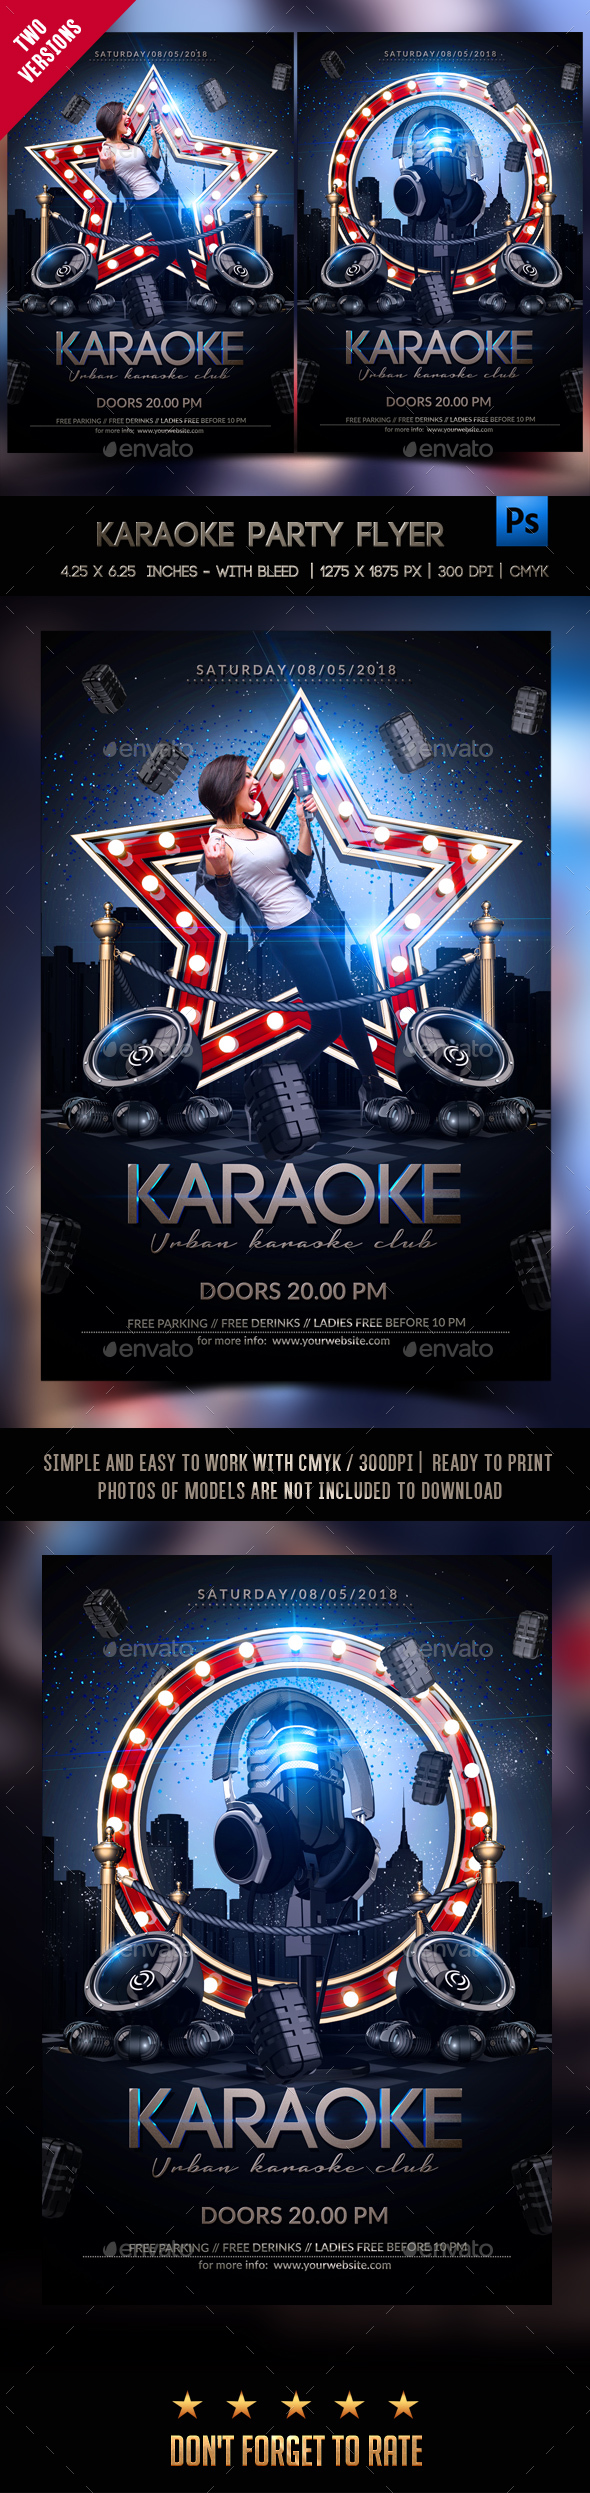 Karaoke Night Template - Clubs & Parties Events